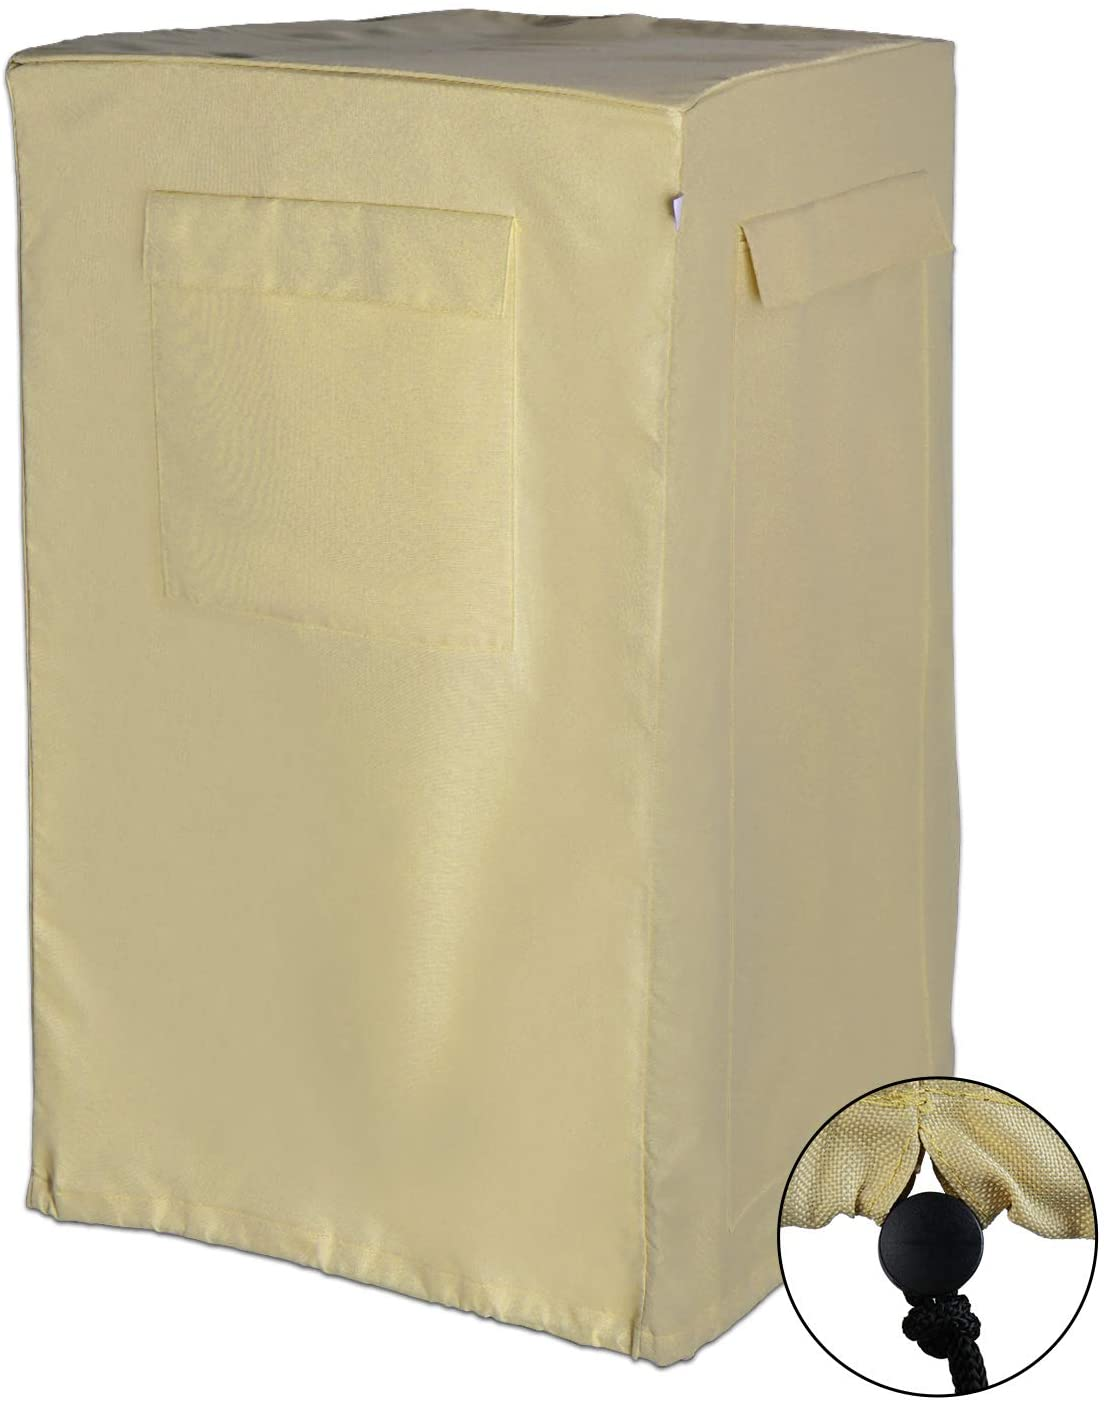 TURBRO Air Conditioner Cover for Portable AC and Outside Units, Fits up to 21.7 x 19.7 x 35 Inches, Anti-Dust Storage Bags, Protection Cover for Home Appliances